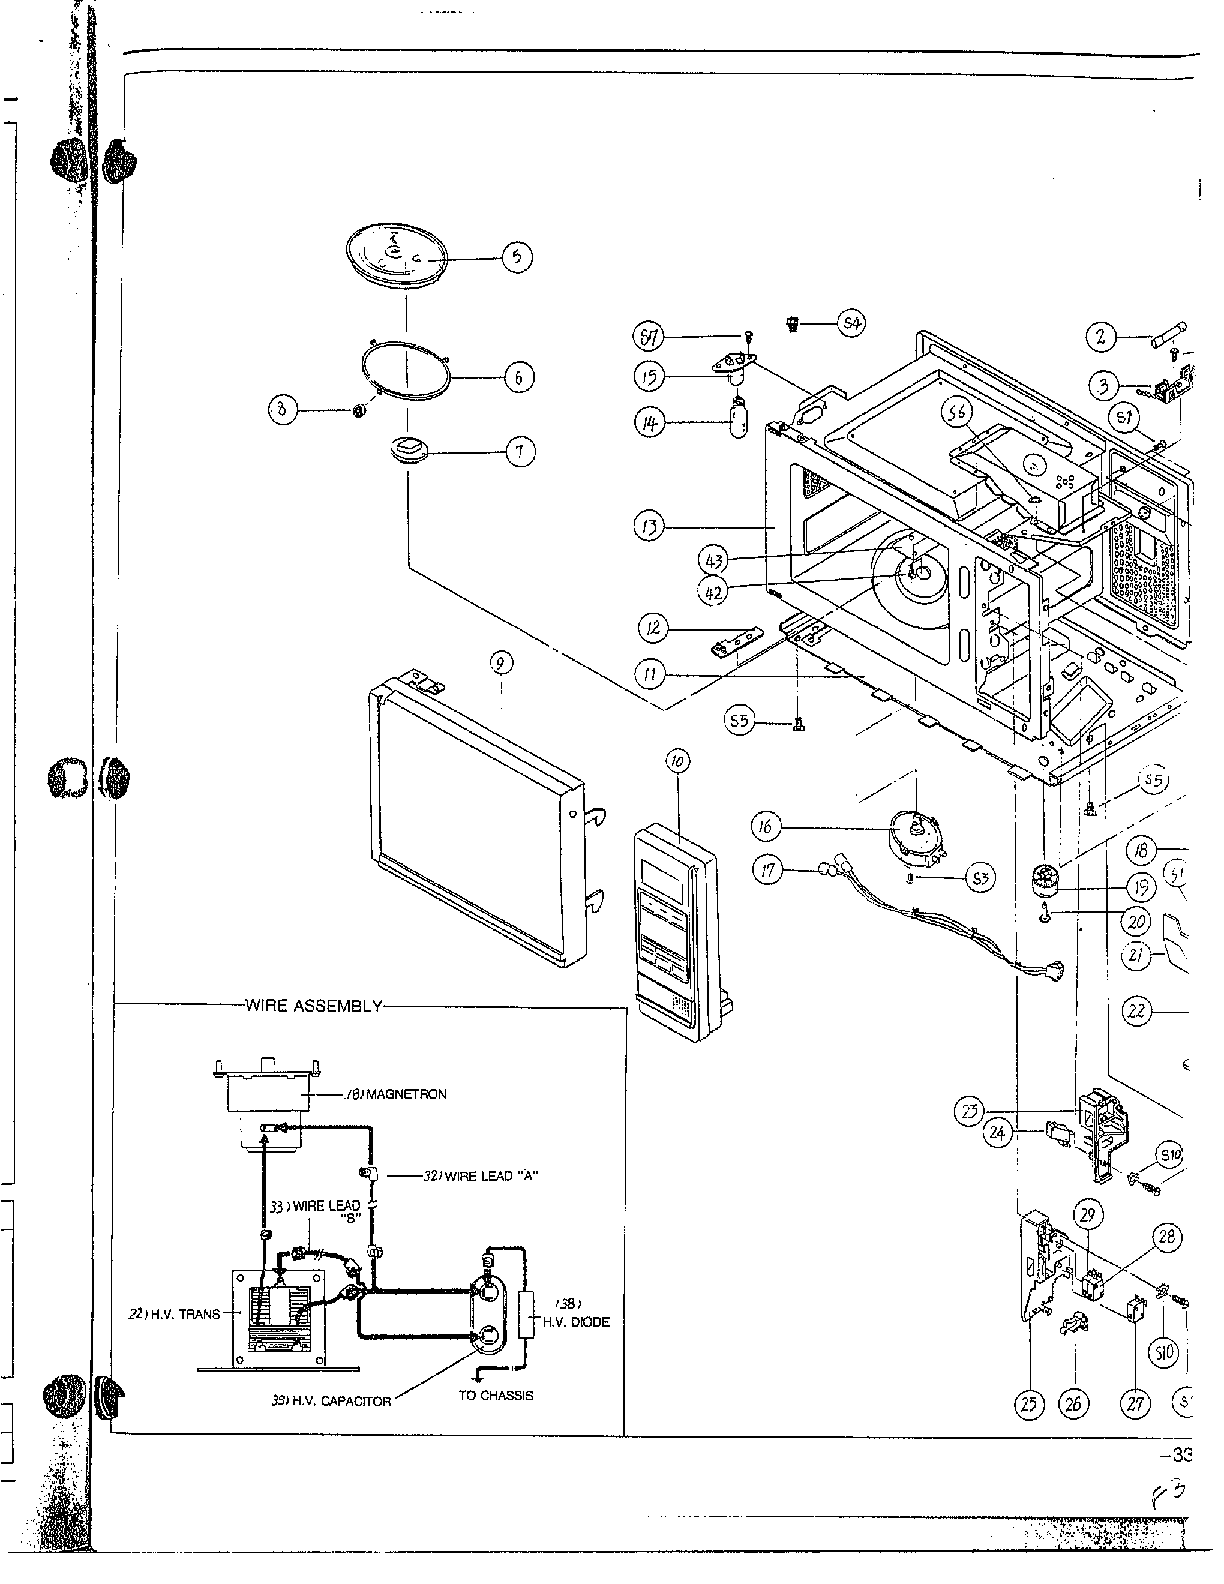 Parts For Samsung Microwave